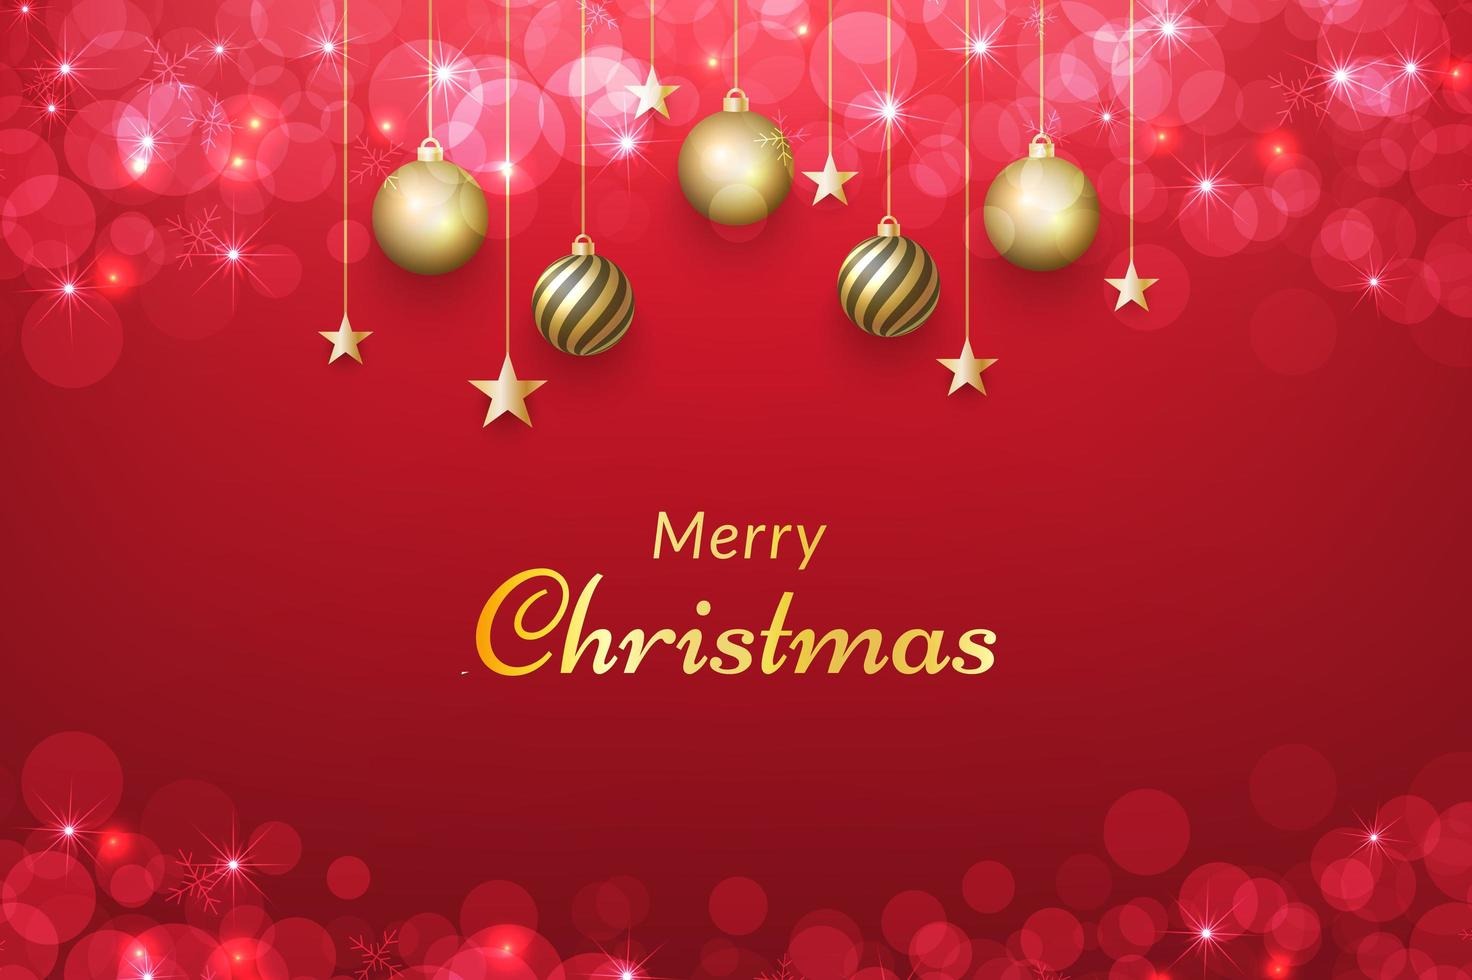 Red Christmas background with hanging ornaments vector